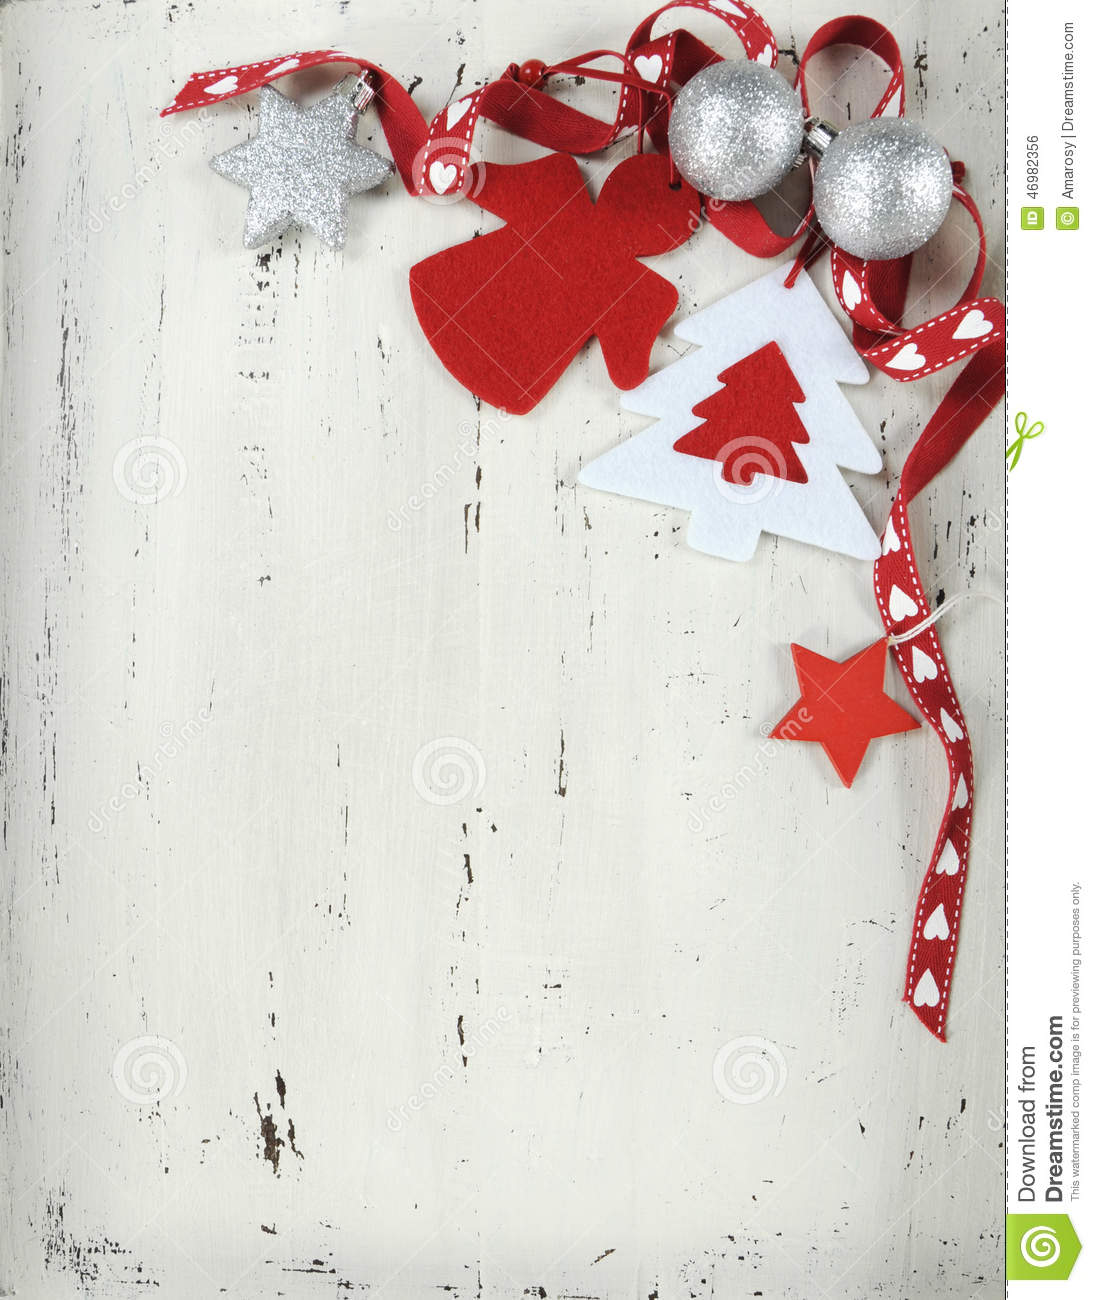 Vintage Christmas Red And White Felt Ornaments - Vertical ...